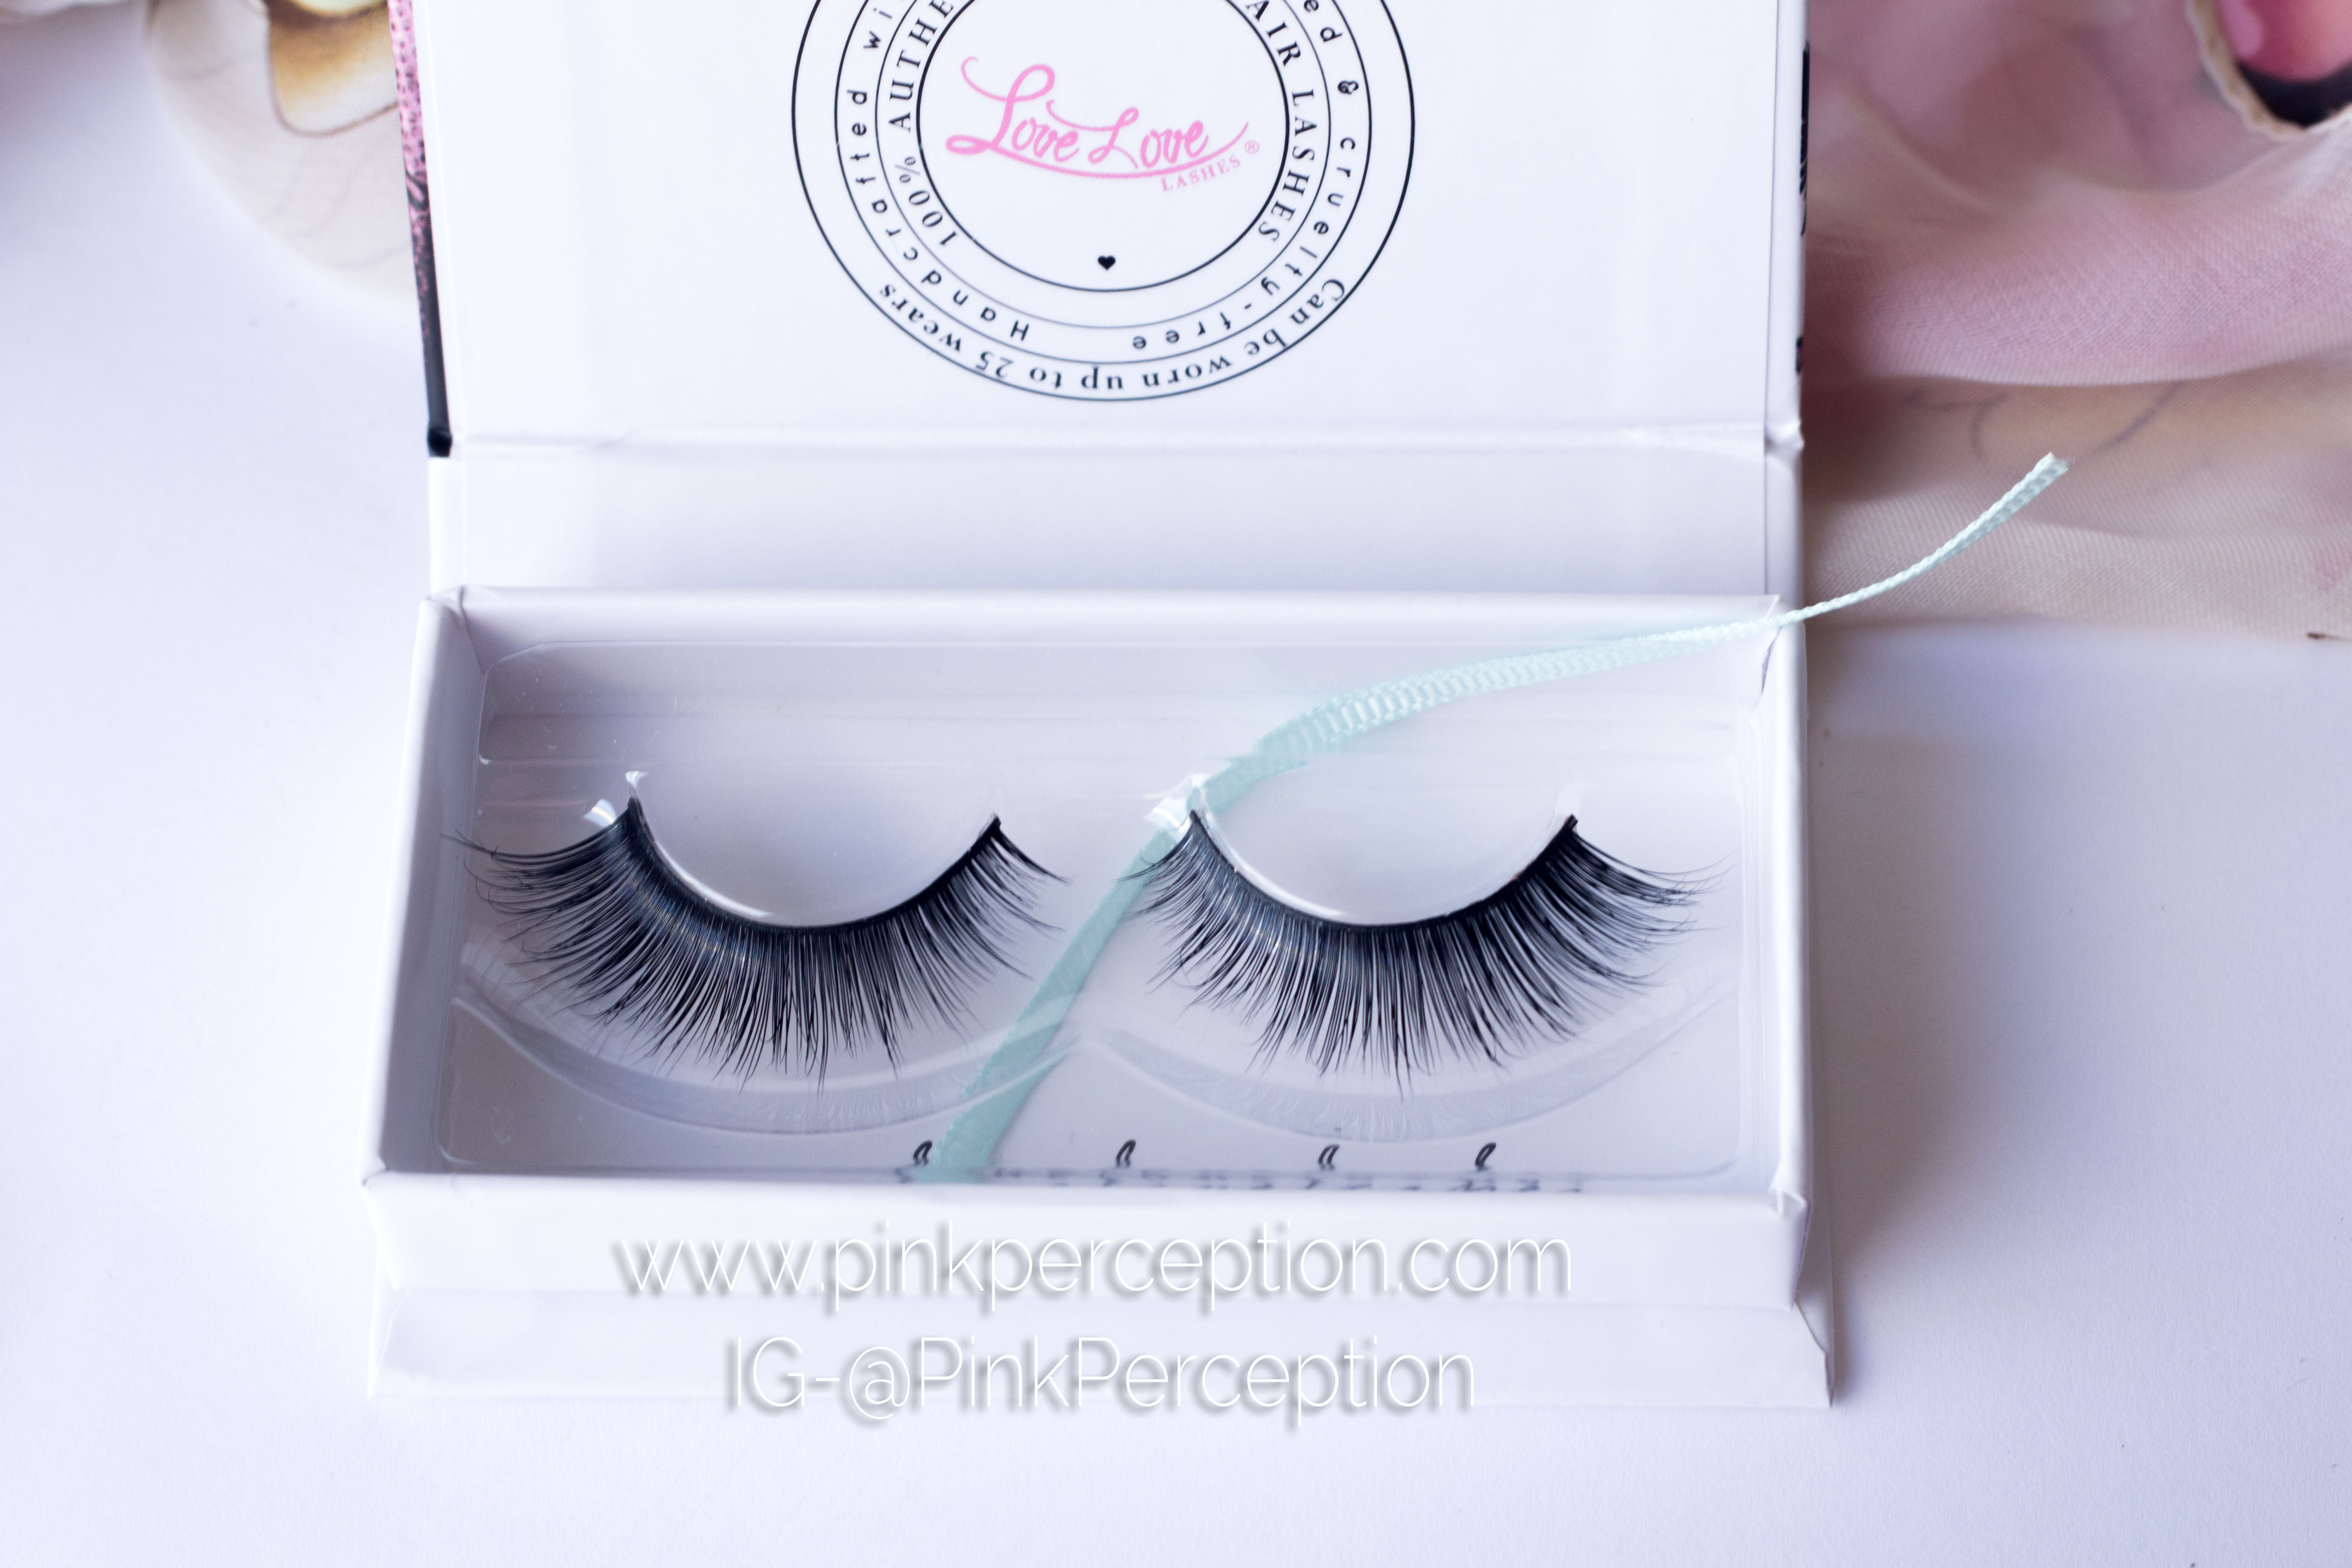 lovelove lashes scarlet mink lashes pinkperception